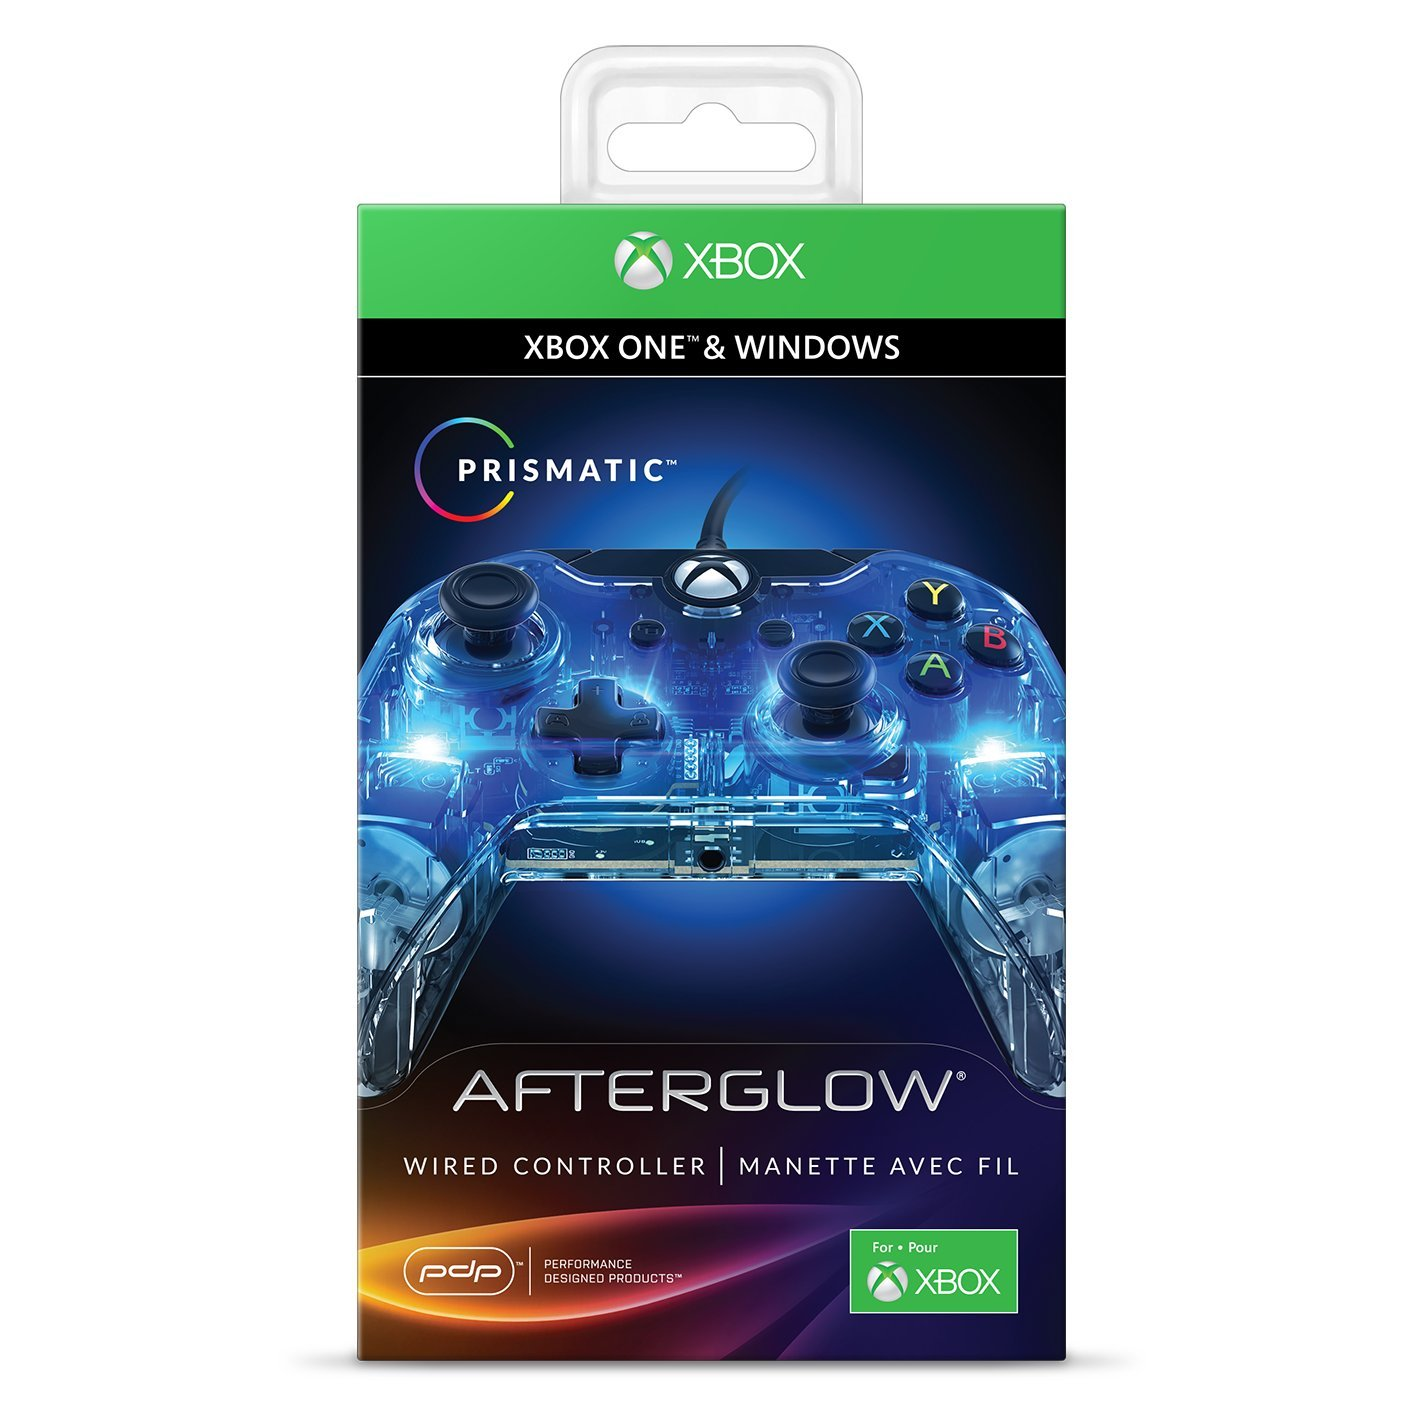 Afterglow Manette Filaire Xbox One – Prismatic